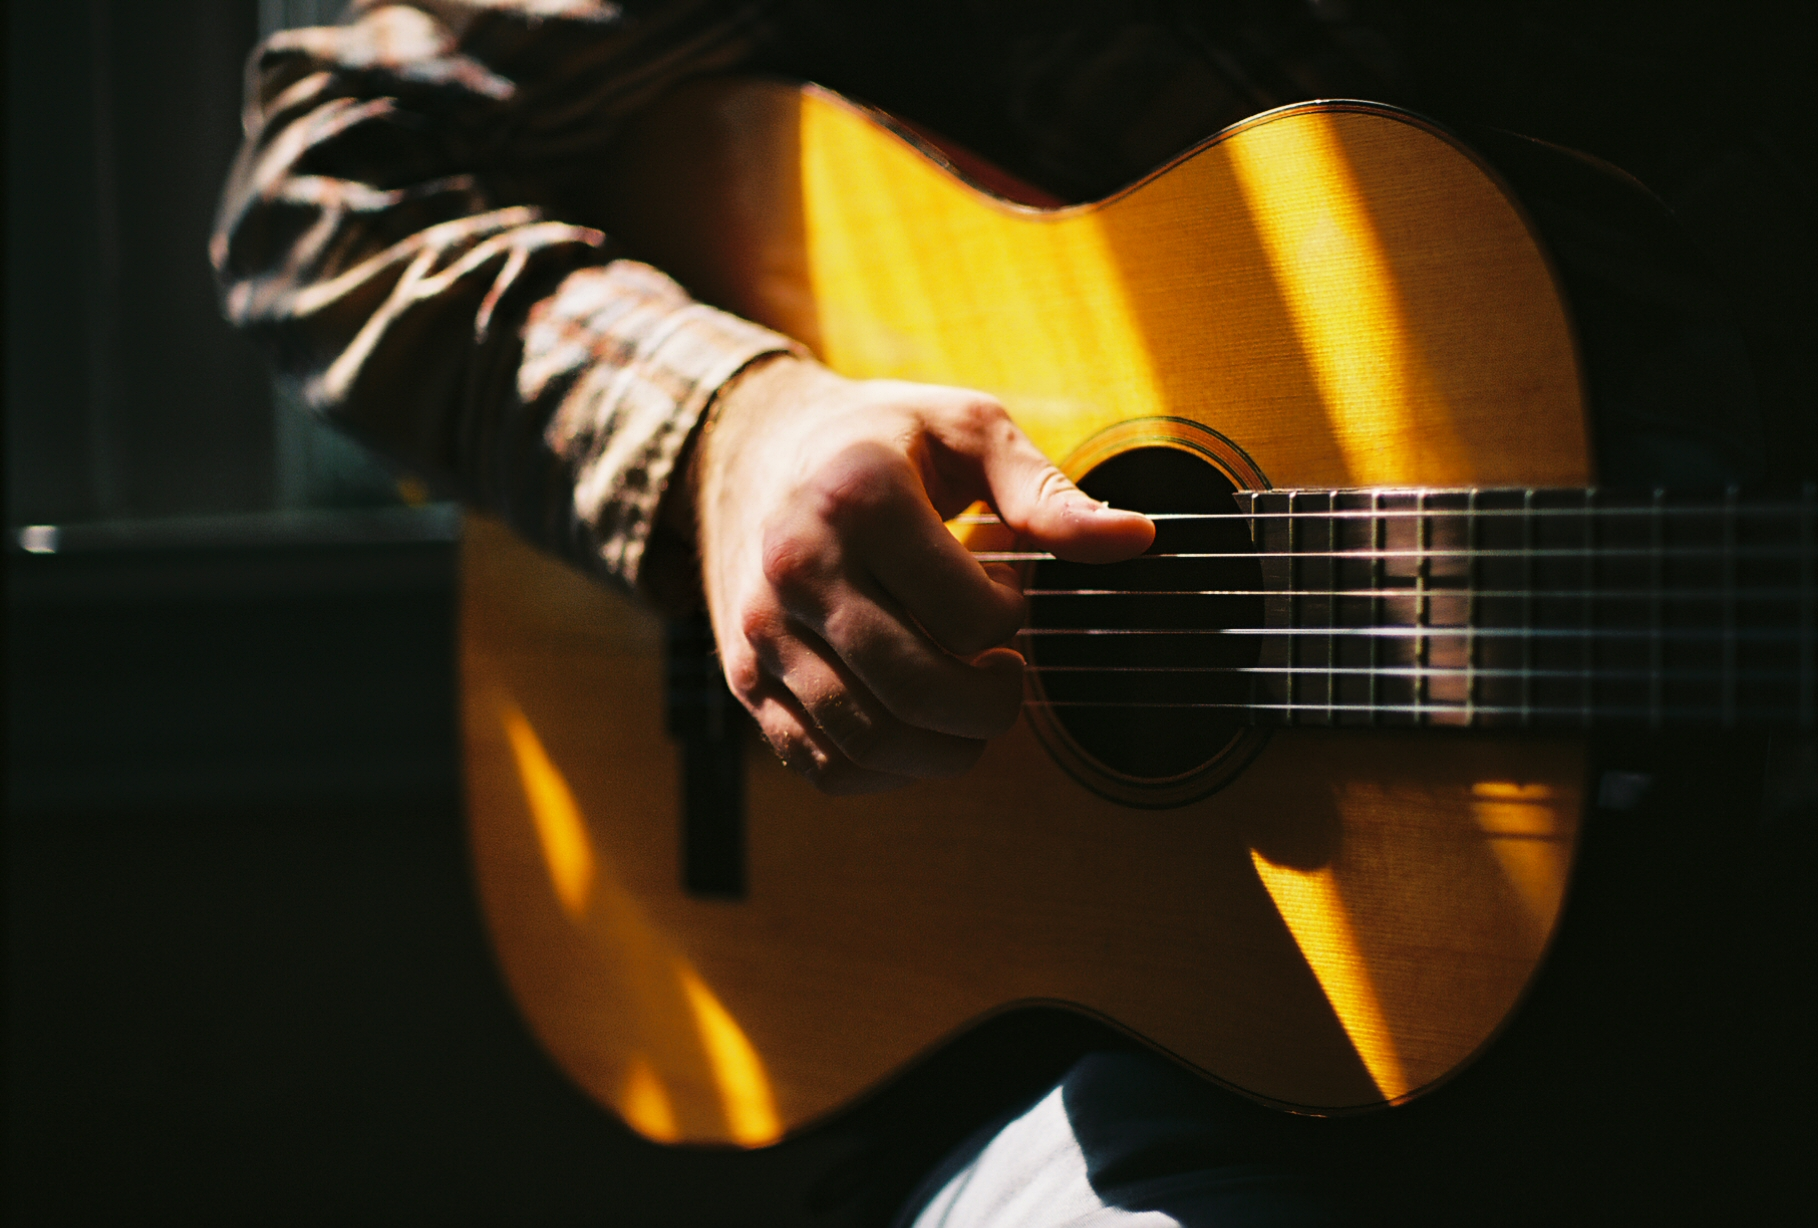 taylor james donskey - Music & Stories